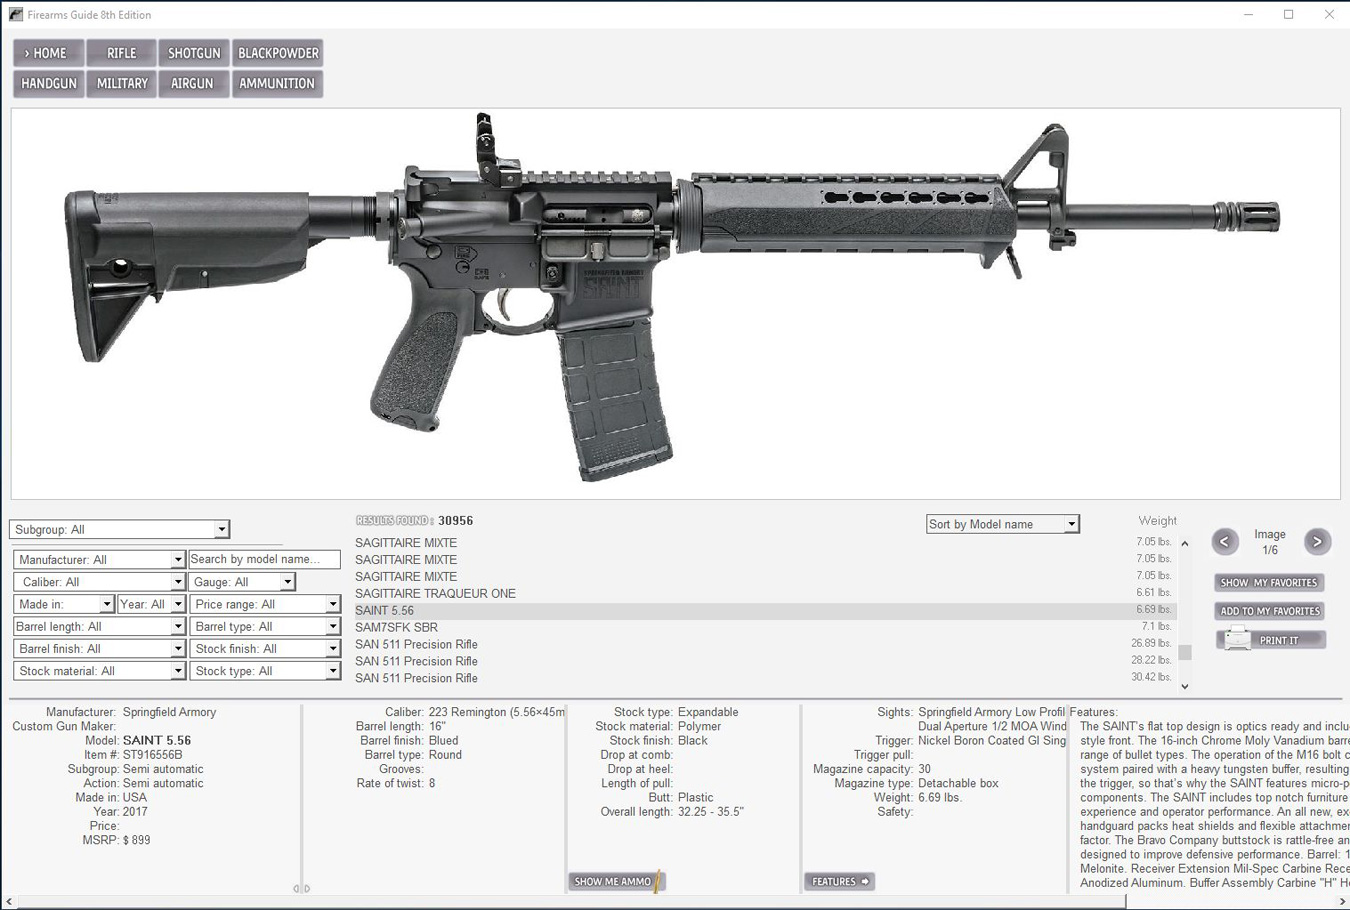 ... m16 parts diagram, ar The Firearms Guide — The Smart Source - The K-Var  Armory on ar lower ...